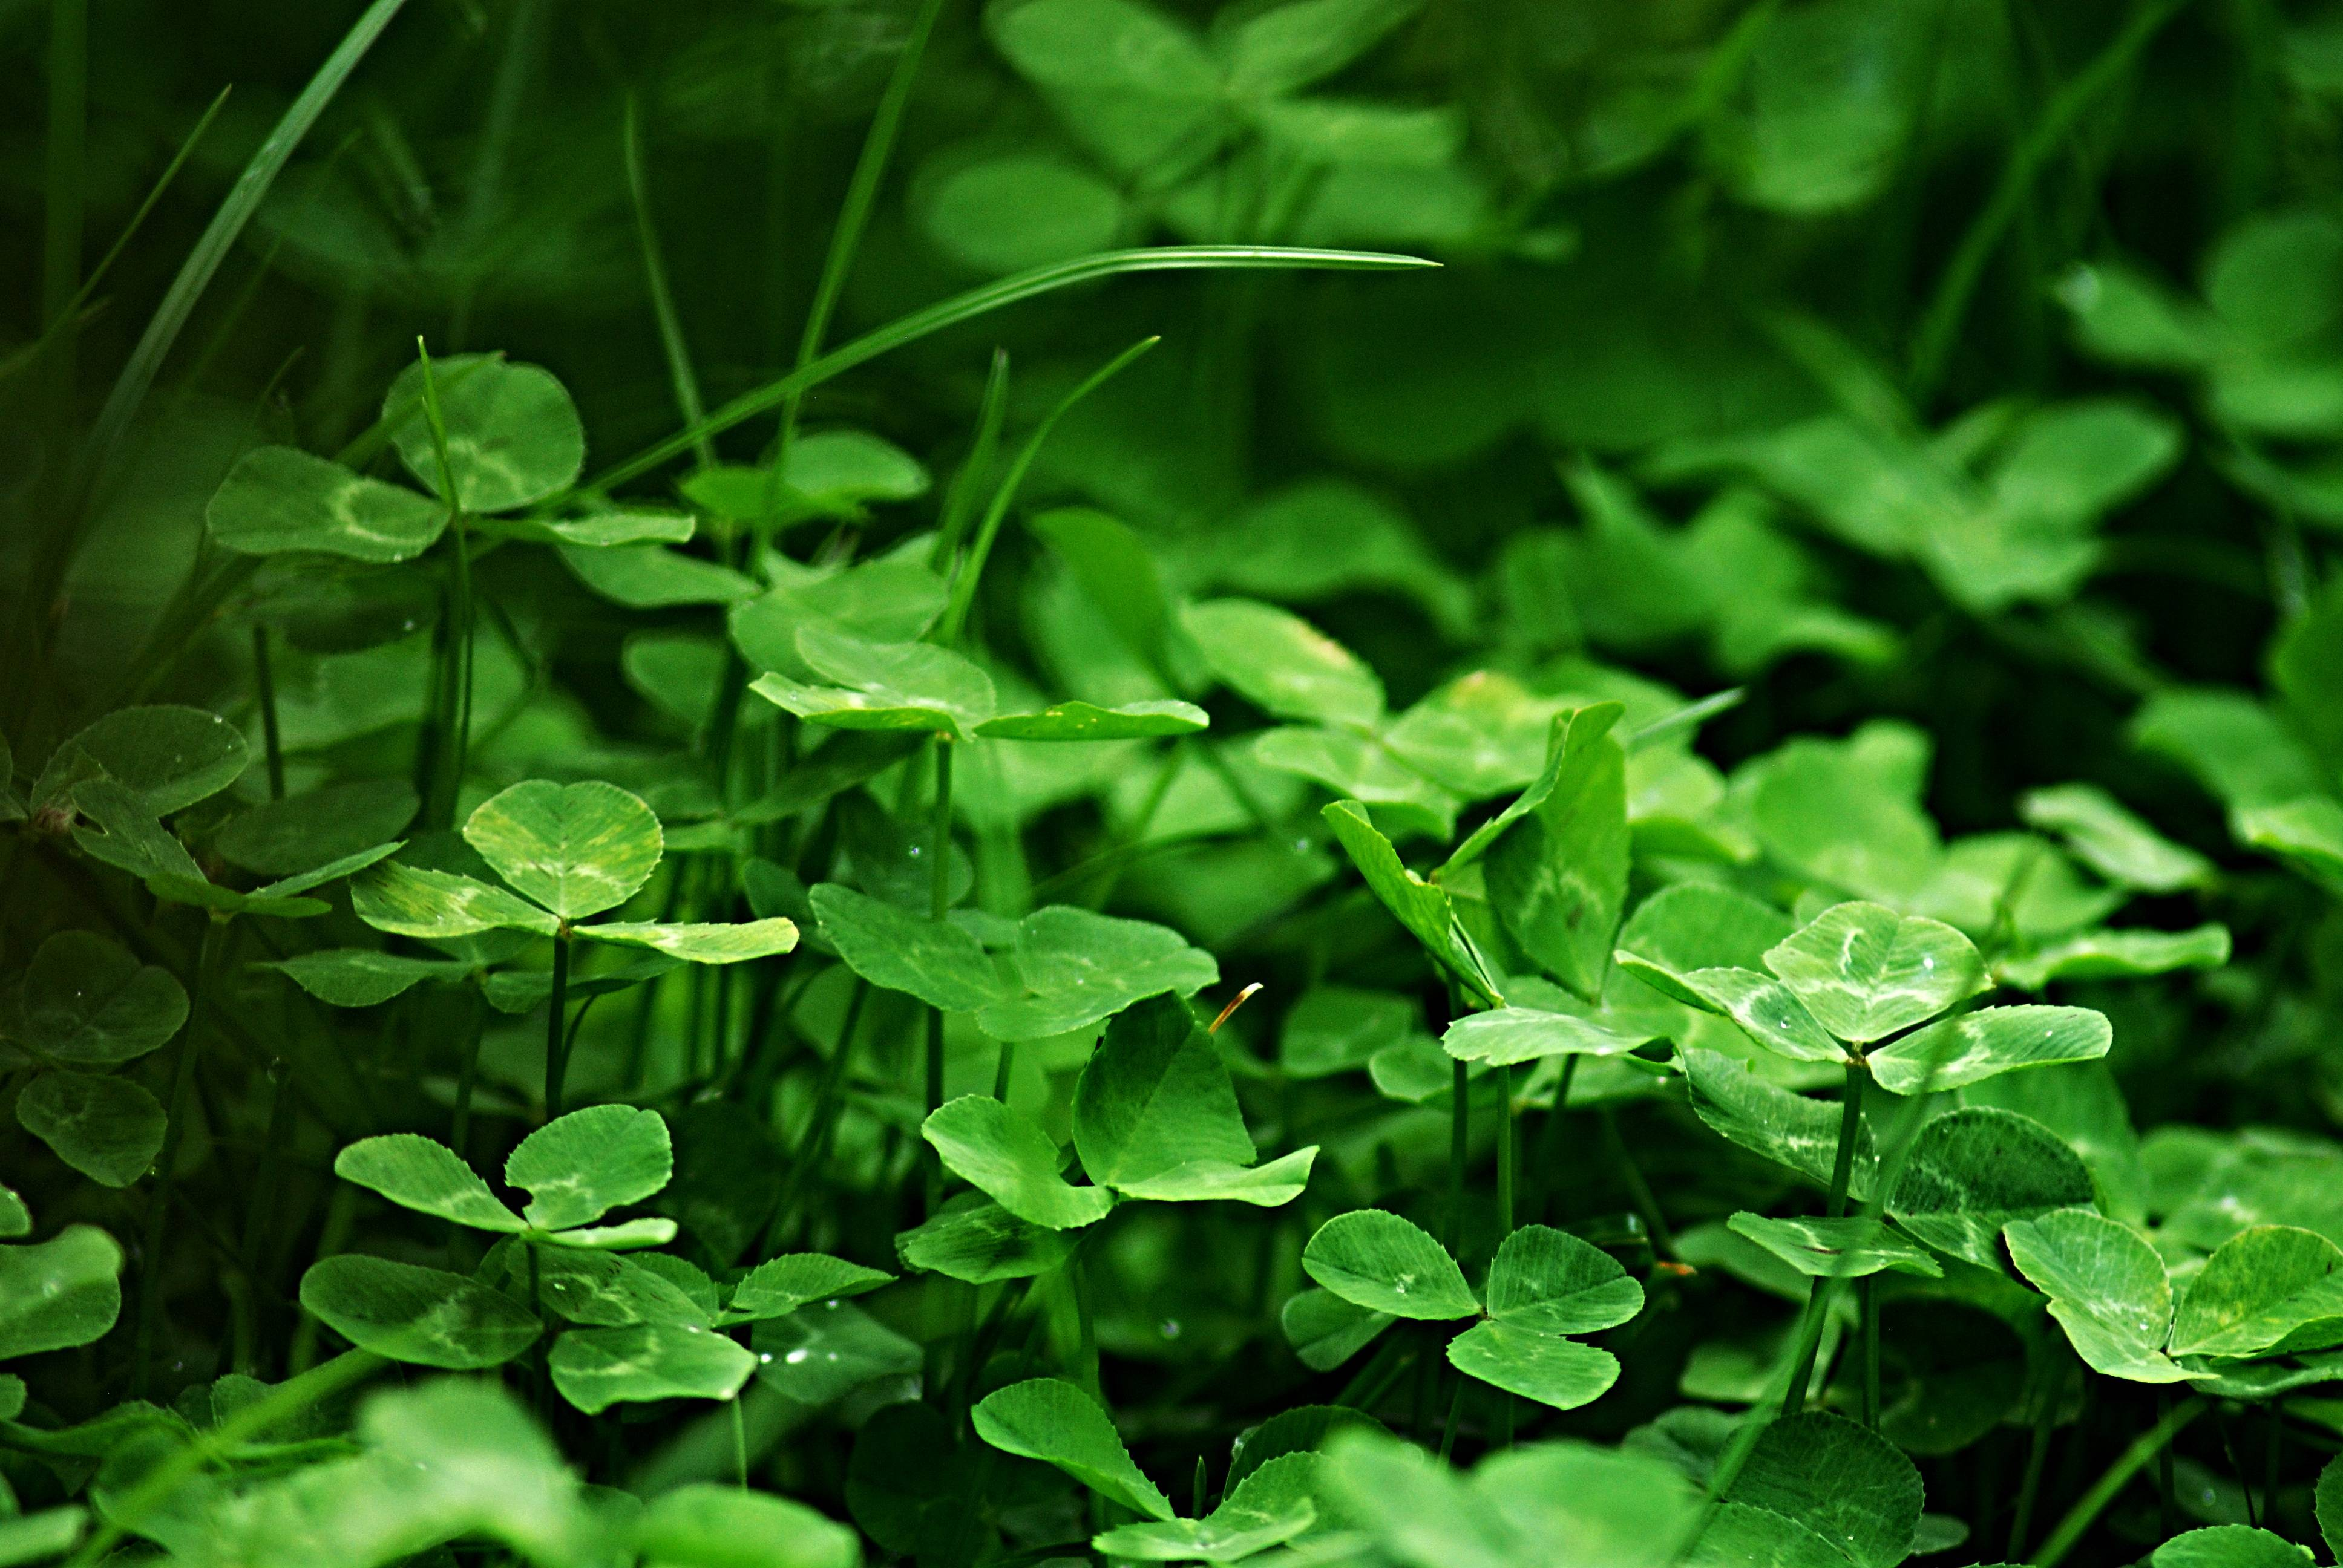 grass plant lawn leaf flower green herb macro botany flora clover wildflower blade of grass flowering plant annual plant land plant apiales centella trifolieae